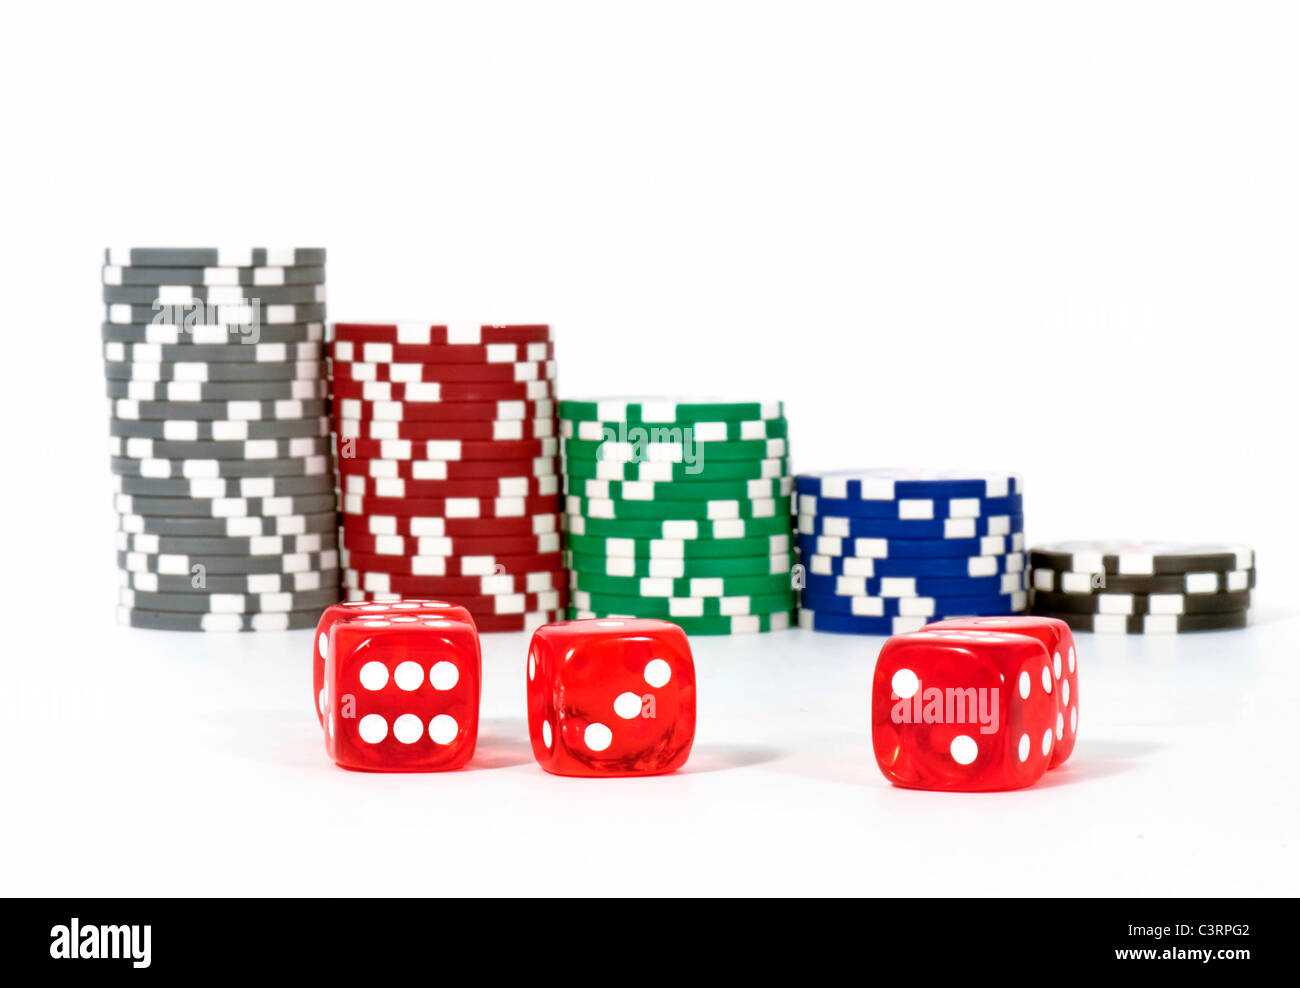 Dice with chips gabling, isolated on white background - Stock Image